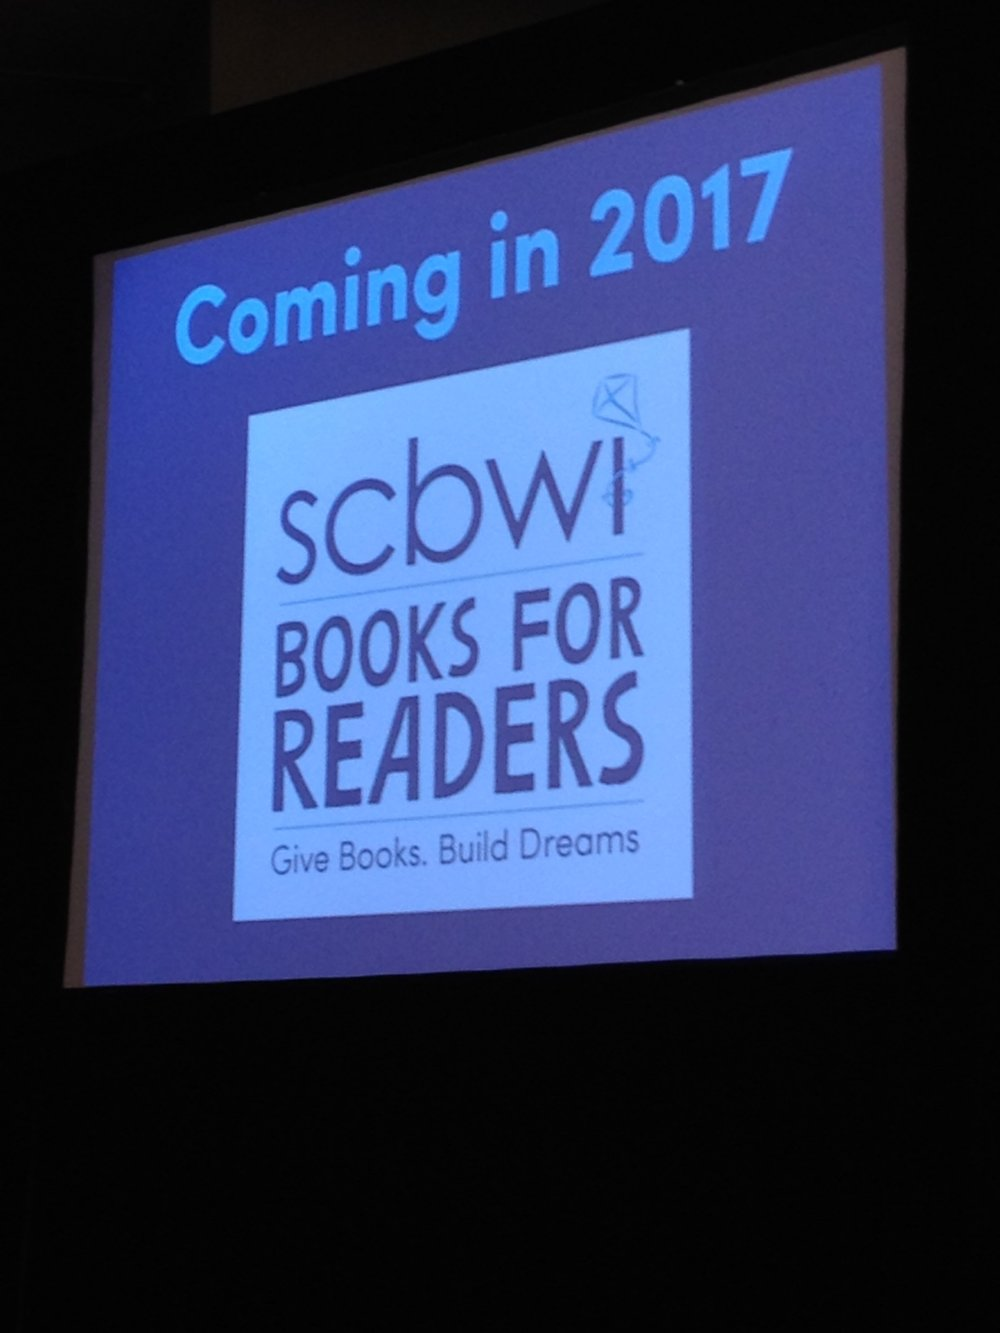 SCBWI BFR Announcement.JPG